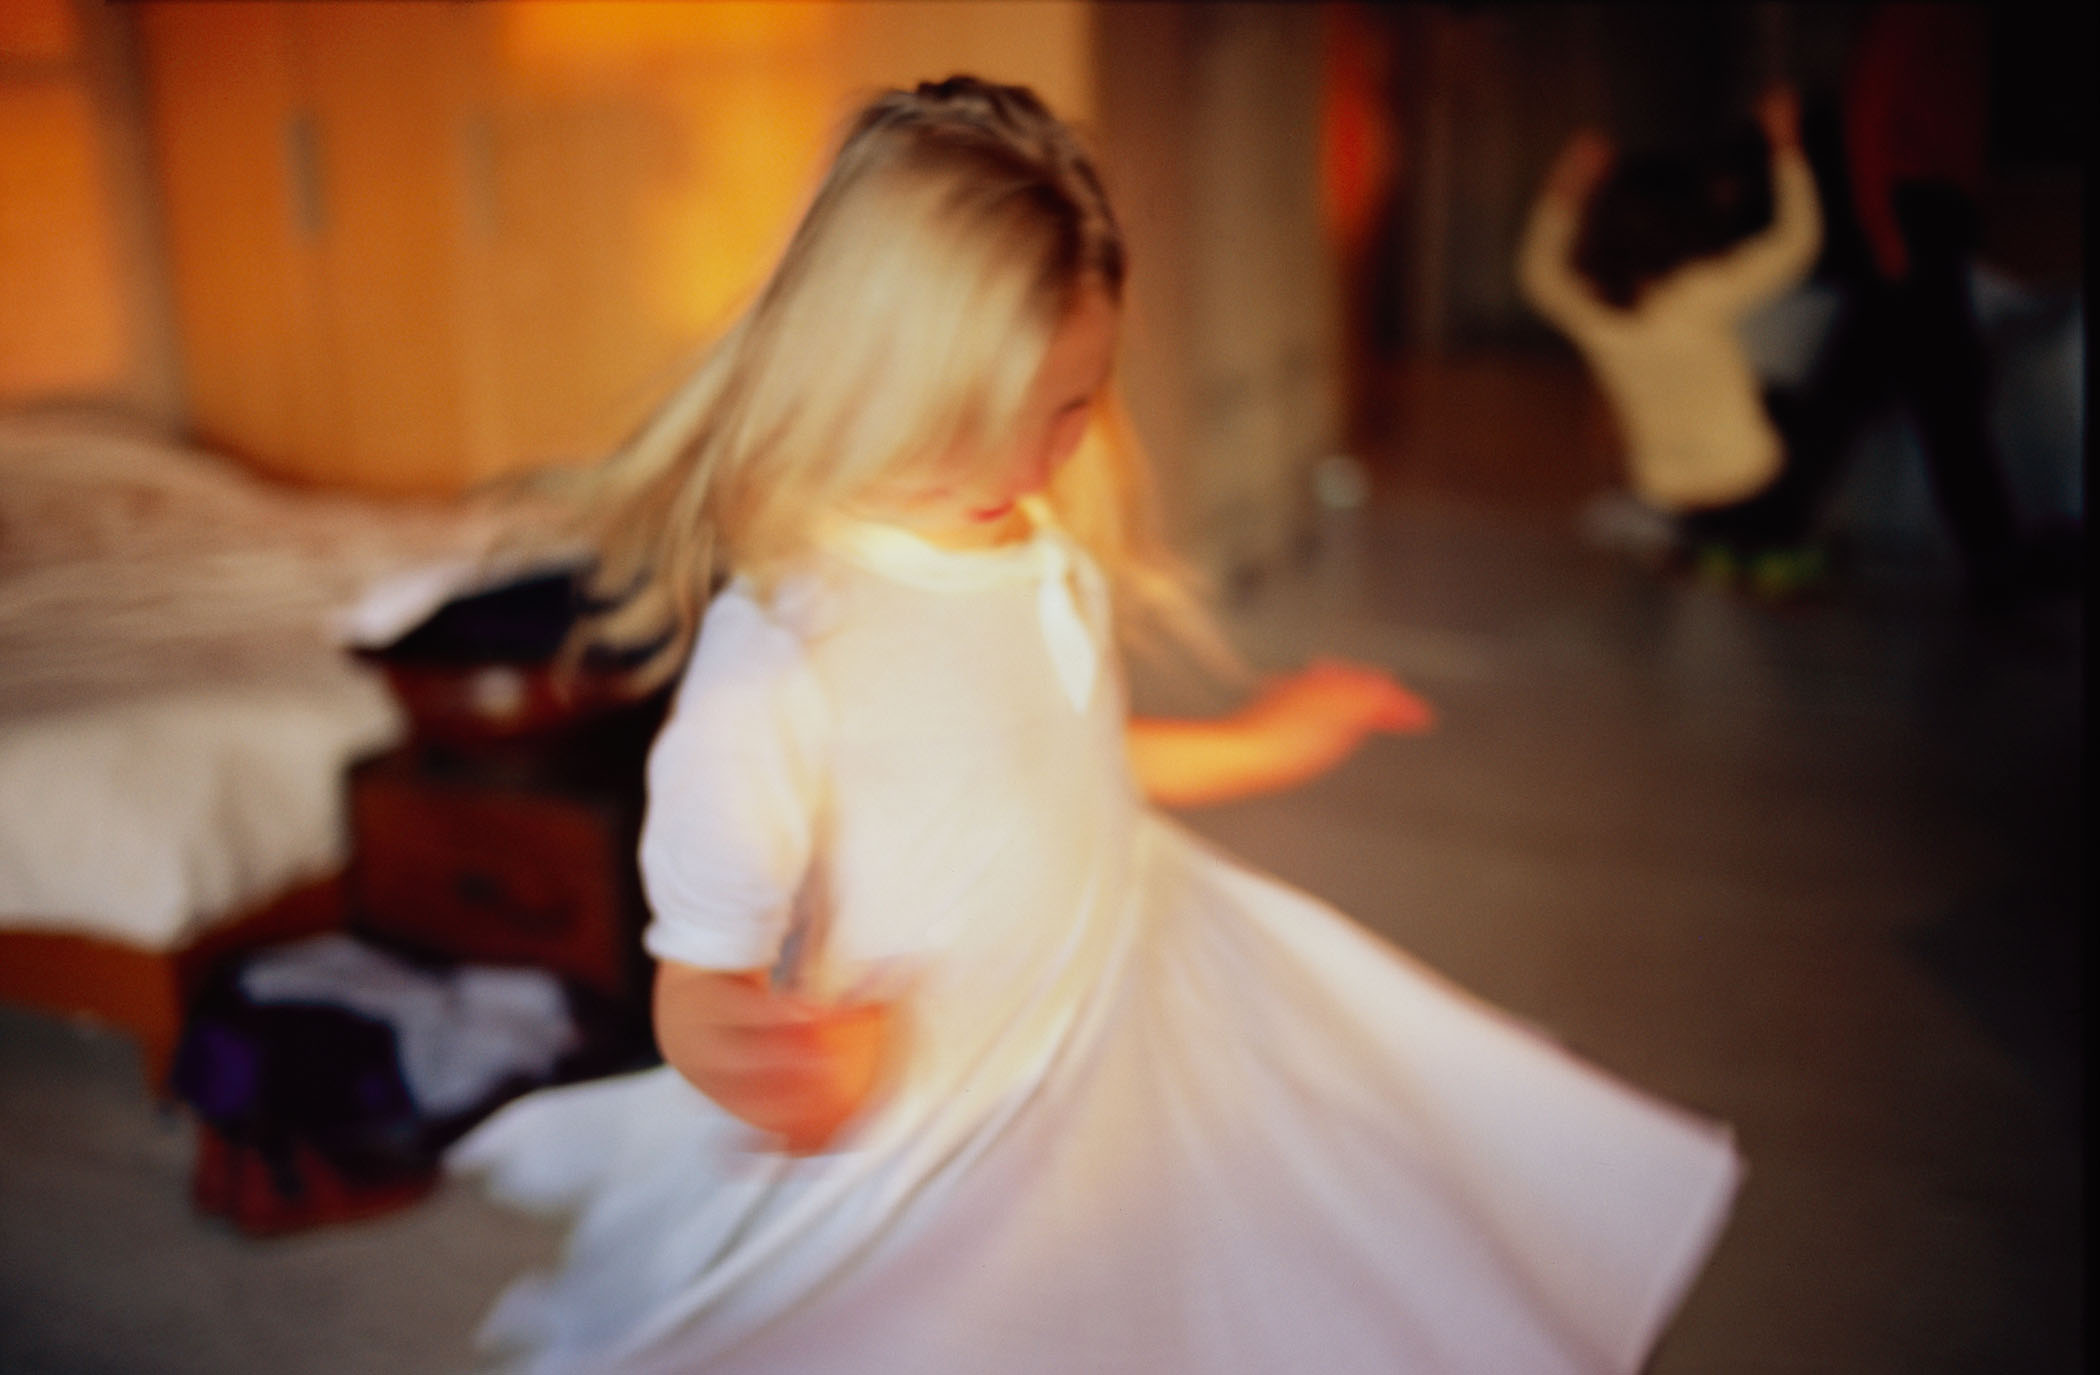 Ava twirling, NYC, 2007